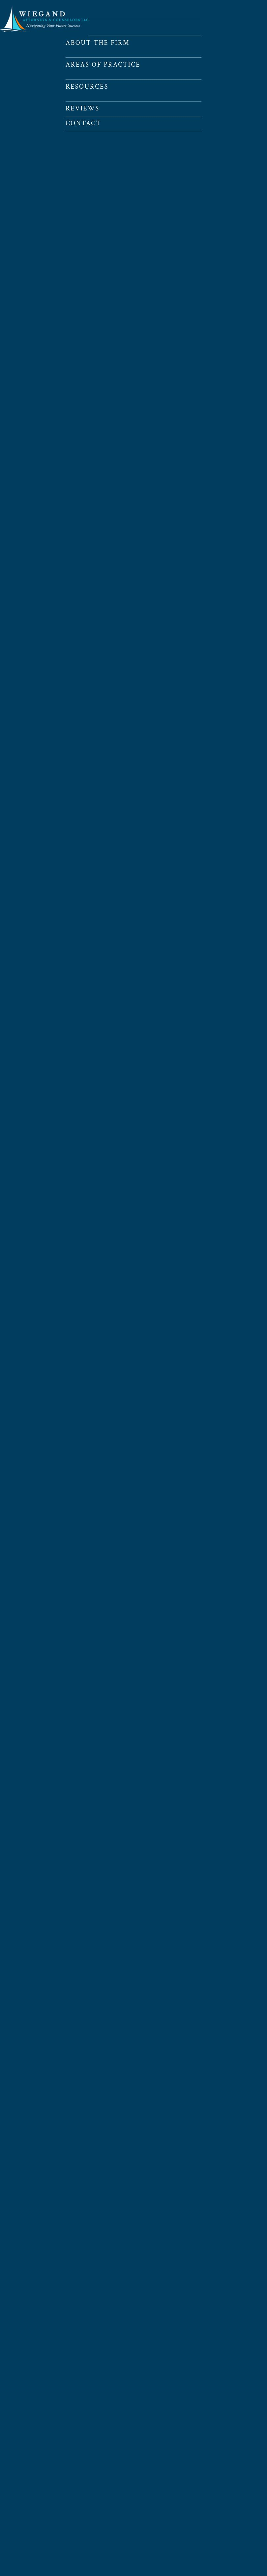 Wiegand Attorneys & Counselors LLC - Denver CO Lawyers